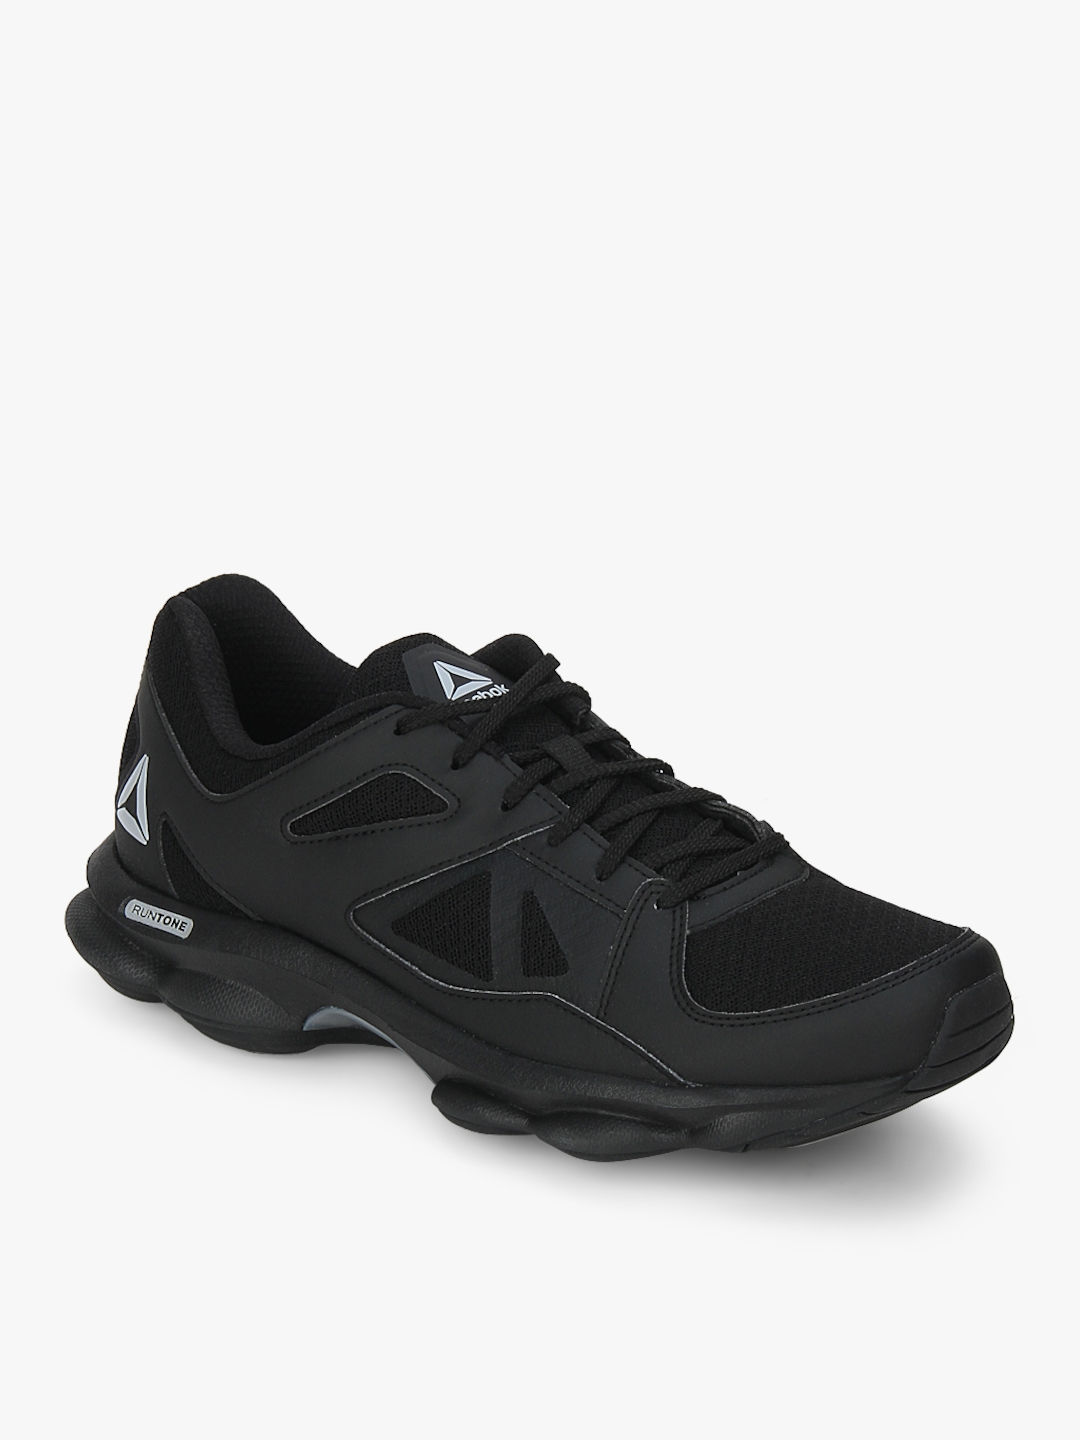 154b7e18ffca Buy reebok men runtone doheny black training shoes sports jpg 1080x1440 Reebok  runtone black